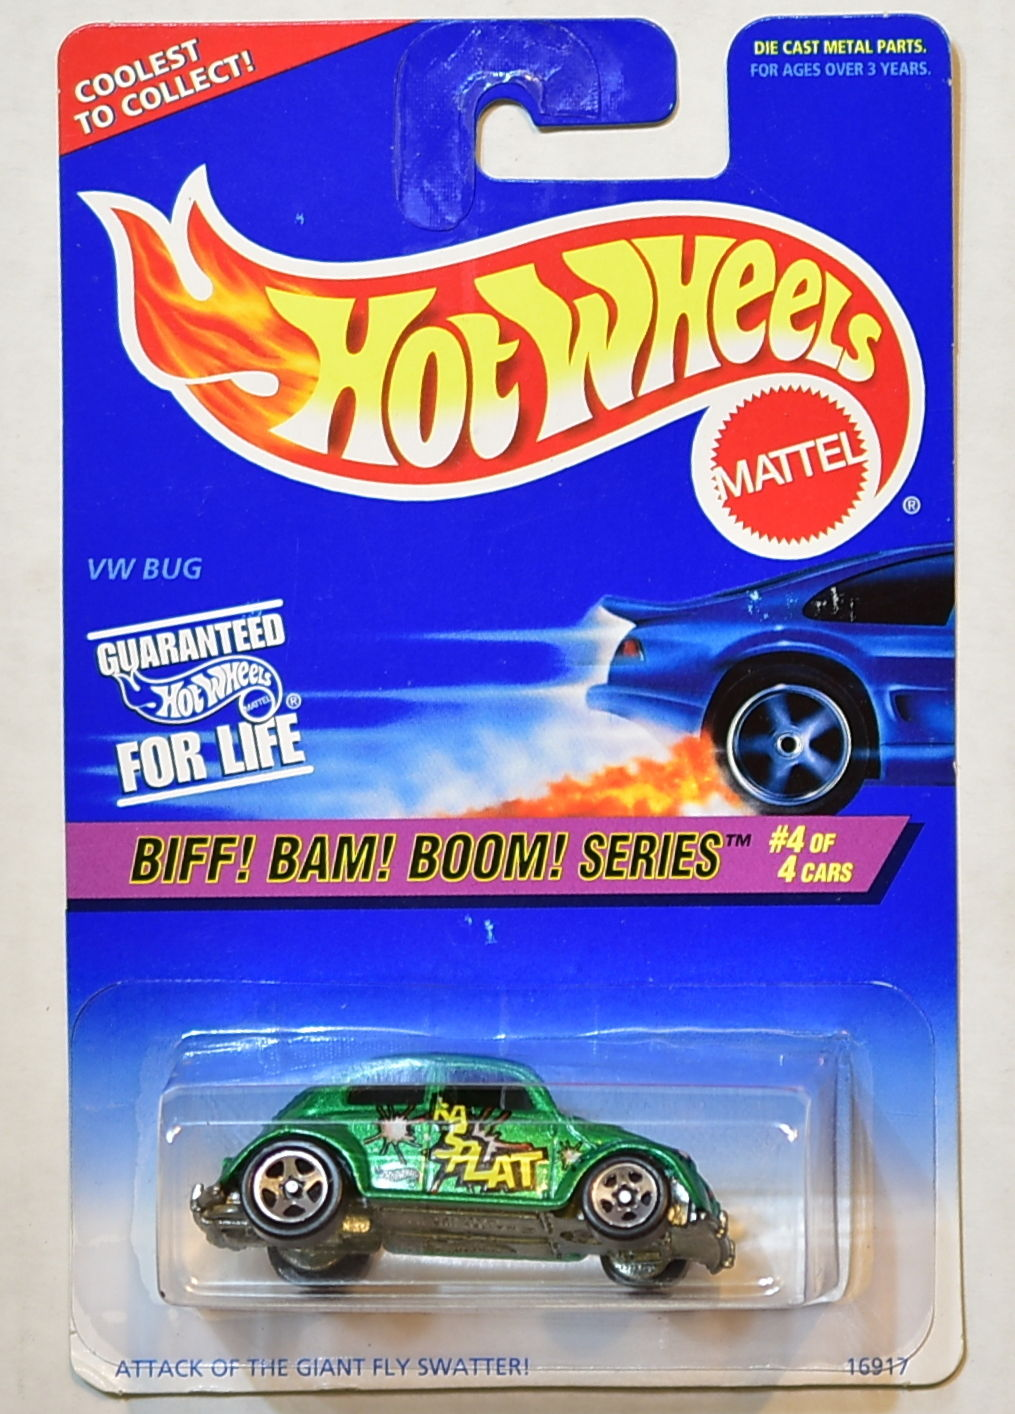 HOT WHEELS 1996 BIFF! BAM! BOOM! SERIES VW BUG GREEN